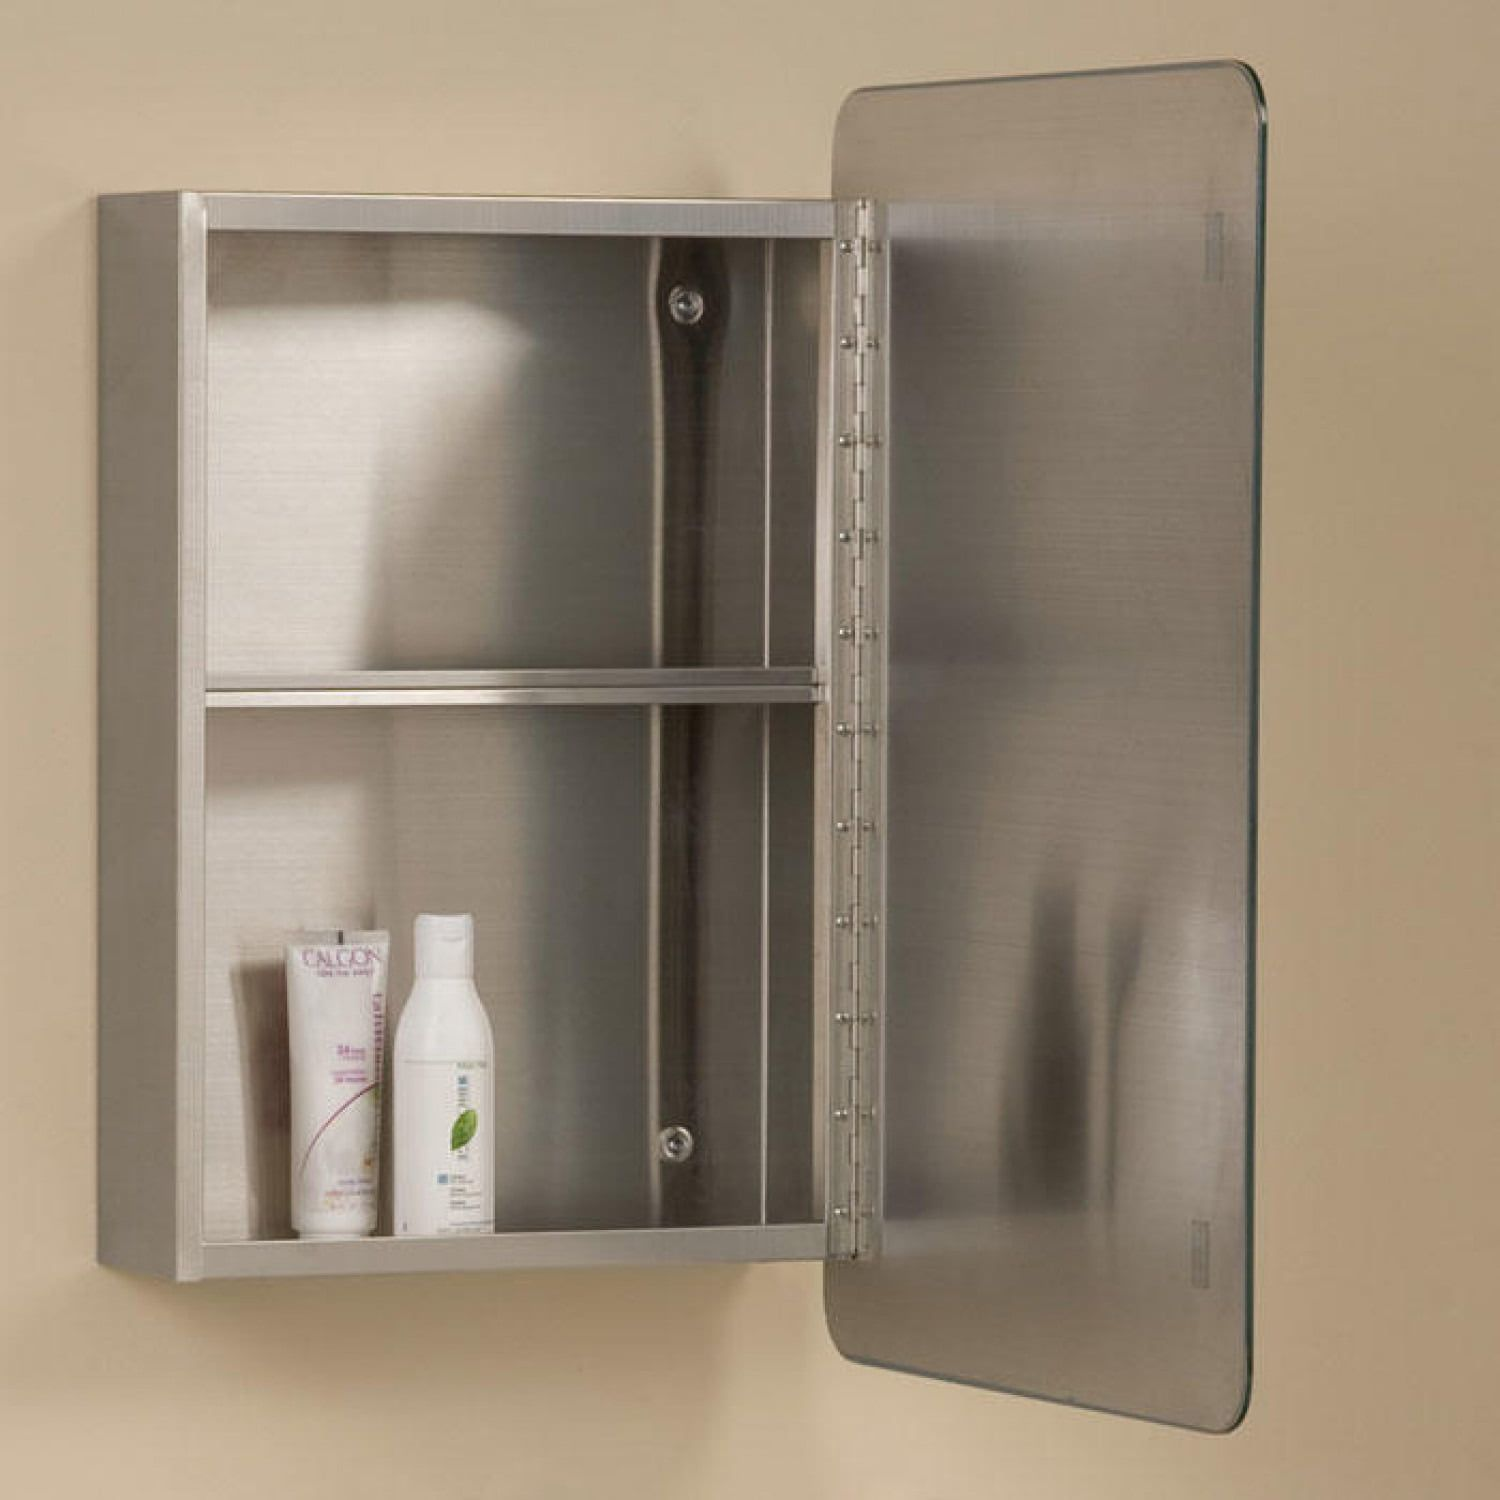 Moderno Reversible Stainless Steel Medicine Cabinet Medicine Cabinets Bath Bathroom Medicine Cabinet Medicine Cabinet With Mirror Closet Organizing Systems